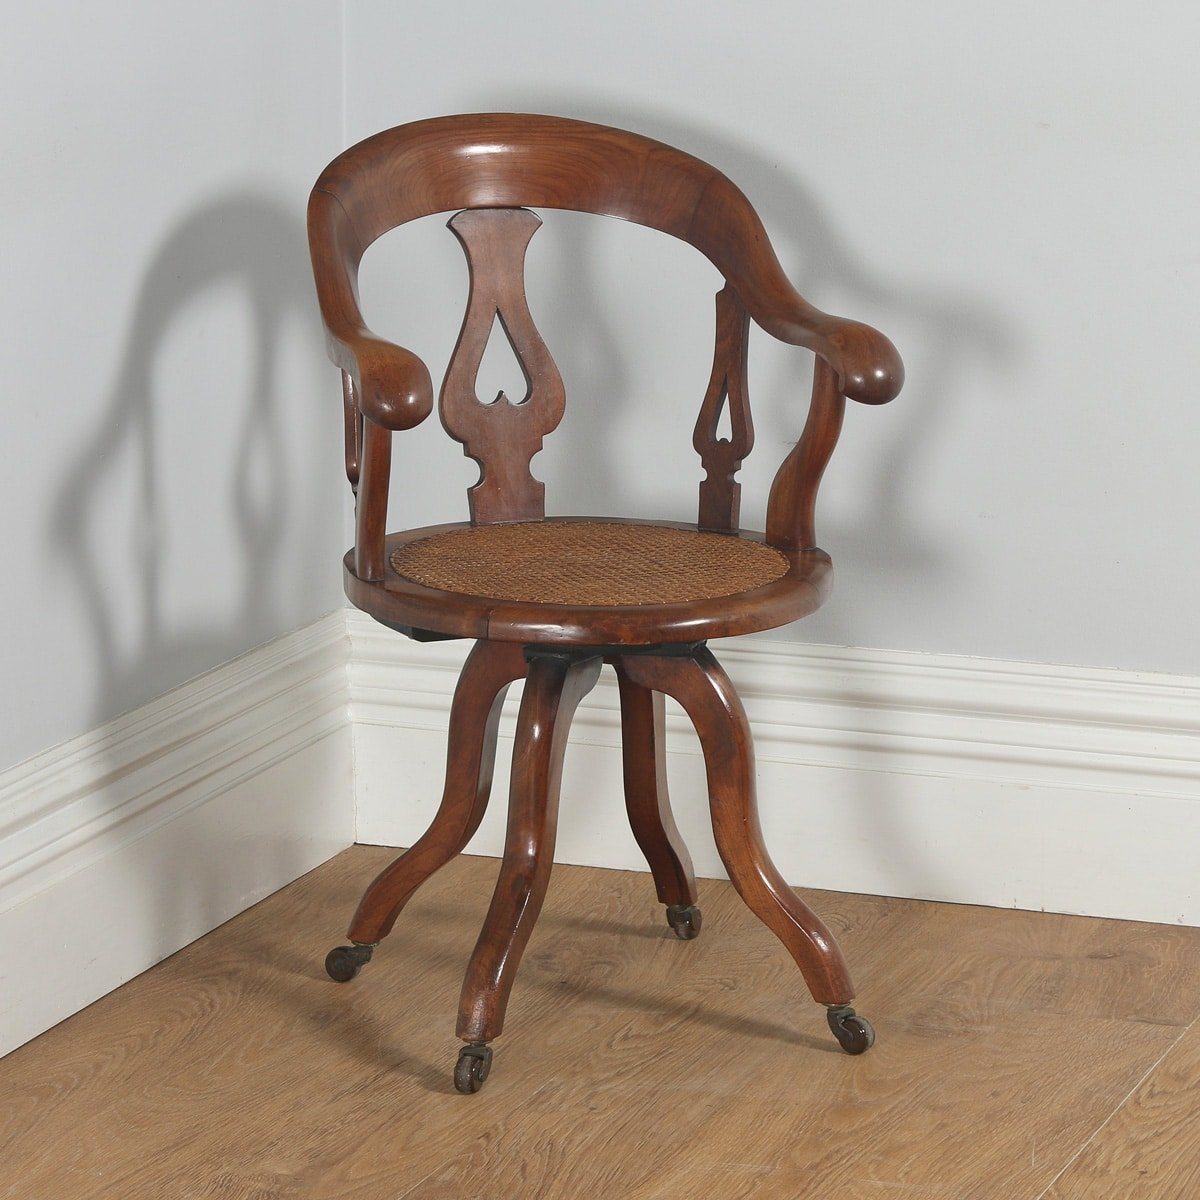 Antique English Victorian Mahogany & Cane Revolving Office Desk Arm Chair (Circa 1860)- yolagray.com